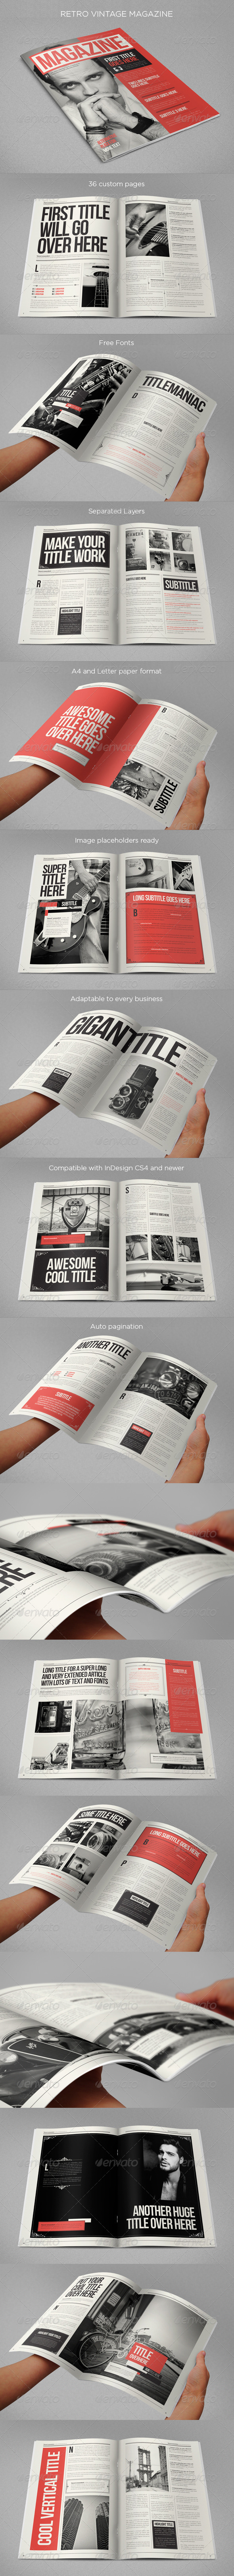 GraphicRiver Retro Vintage Magazine 8682759